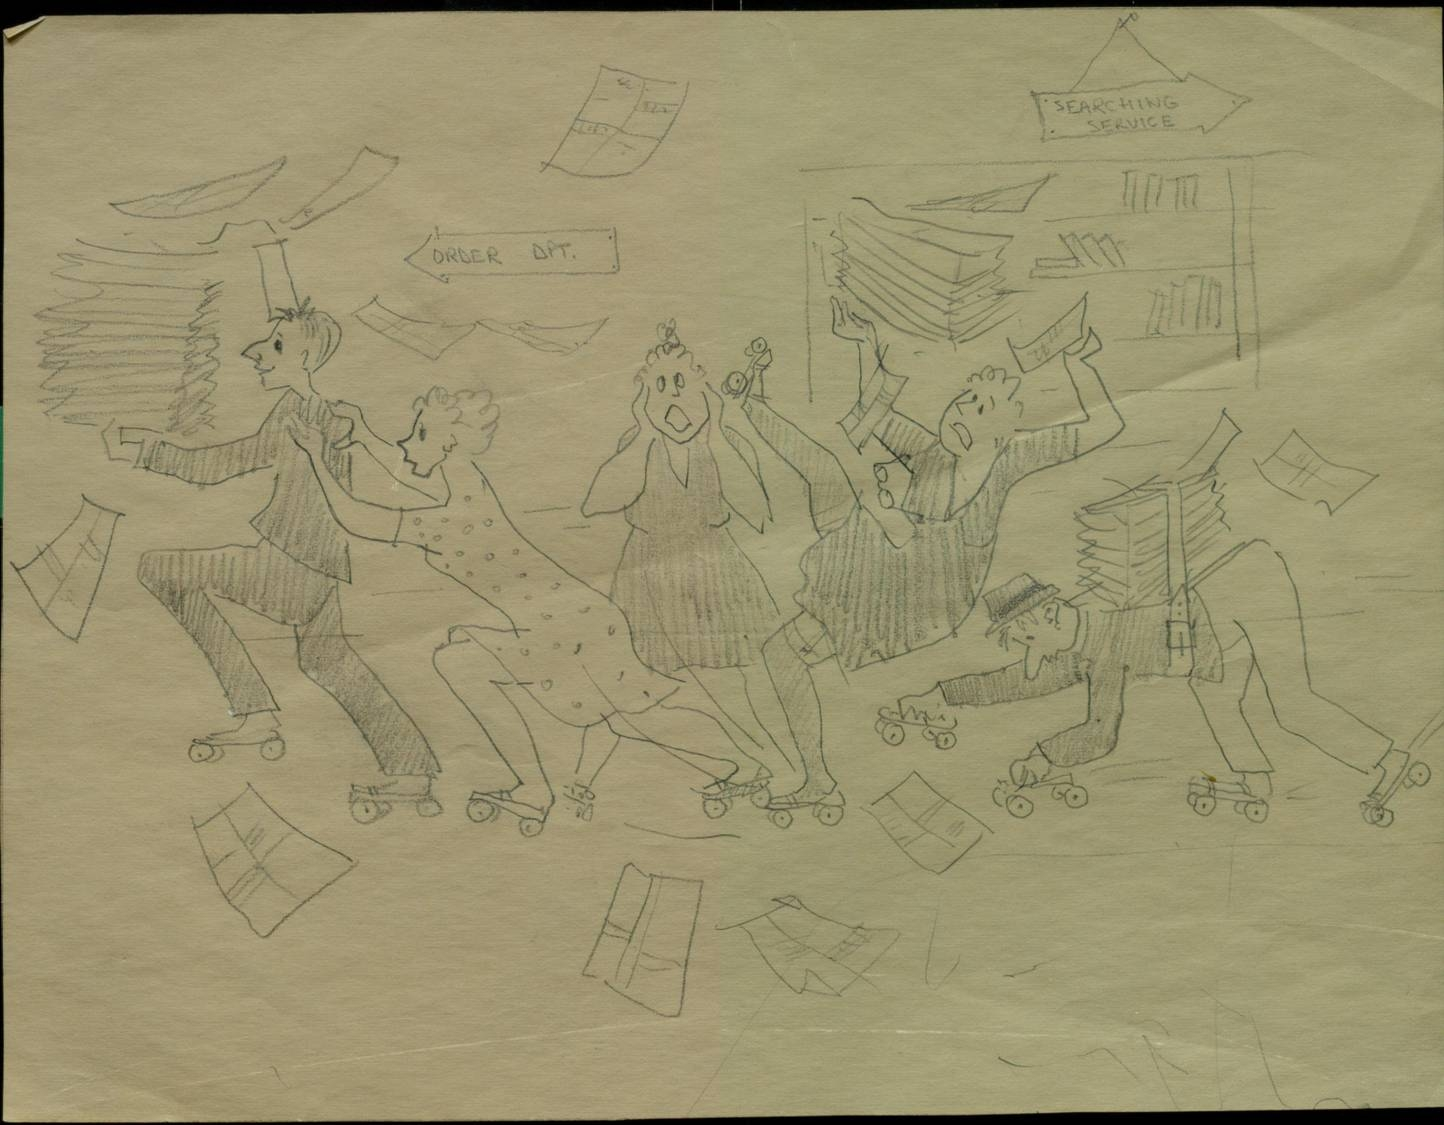 Second of two hand-drawn pictures of UTL Collections Development department, possibly drawn in the sixties